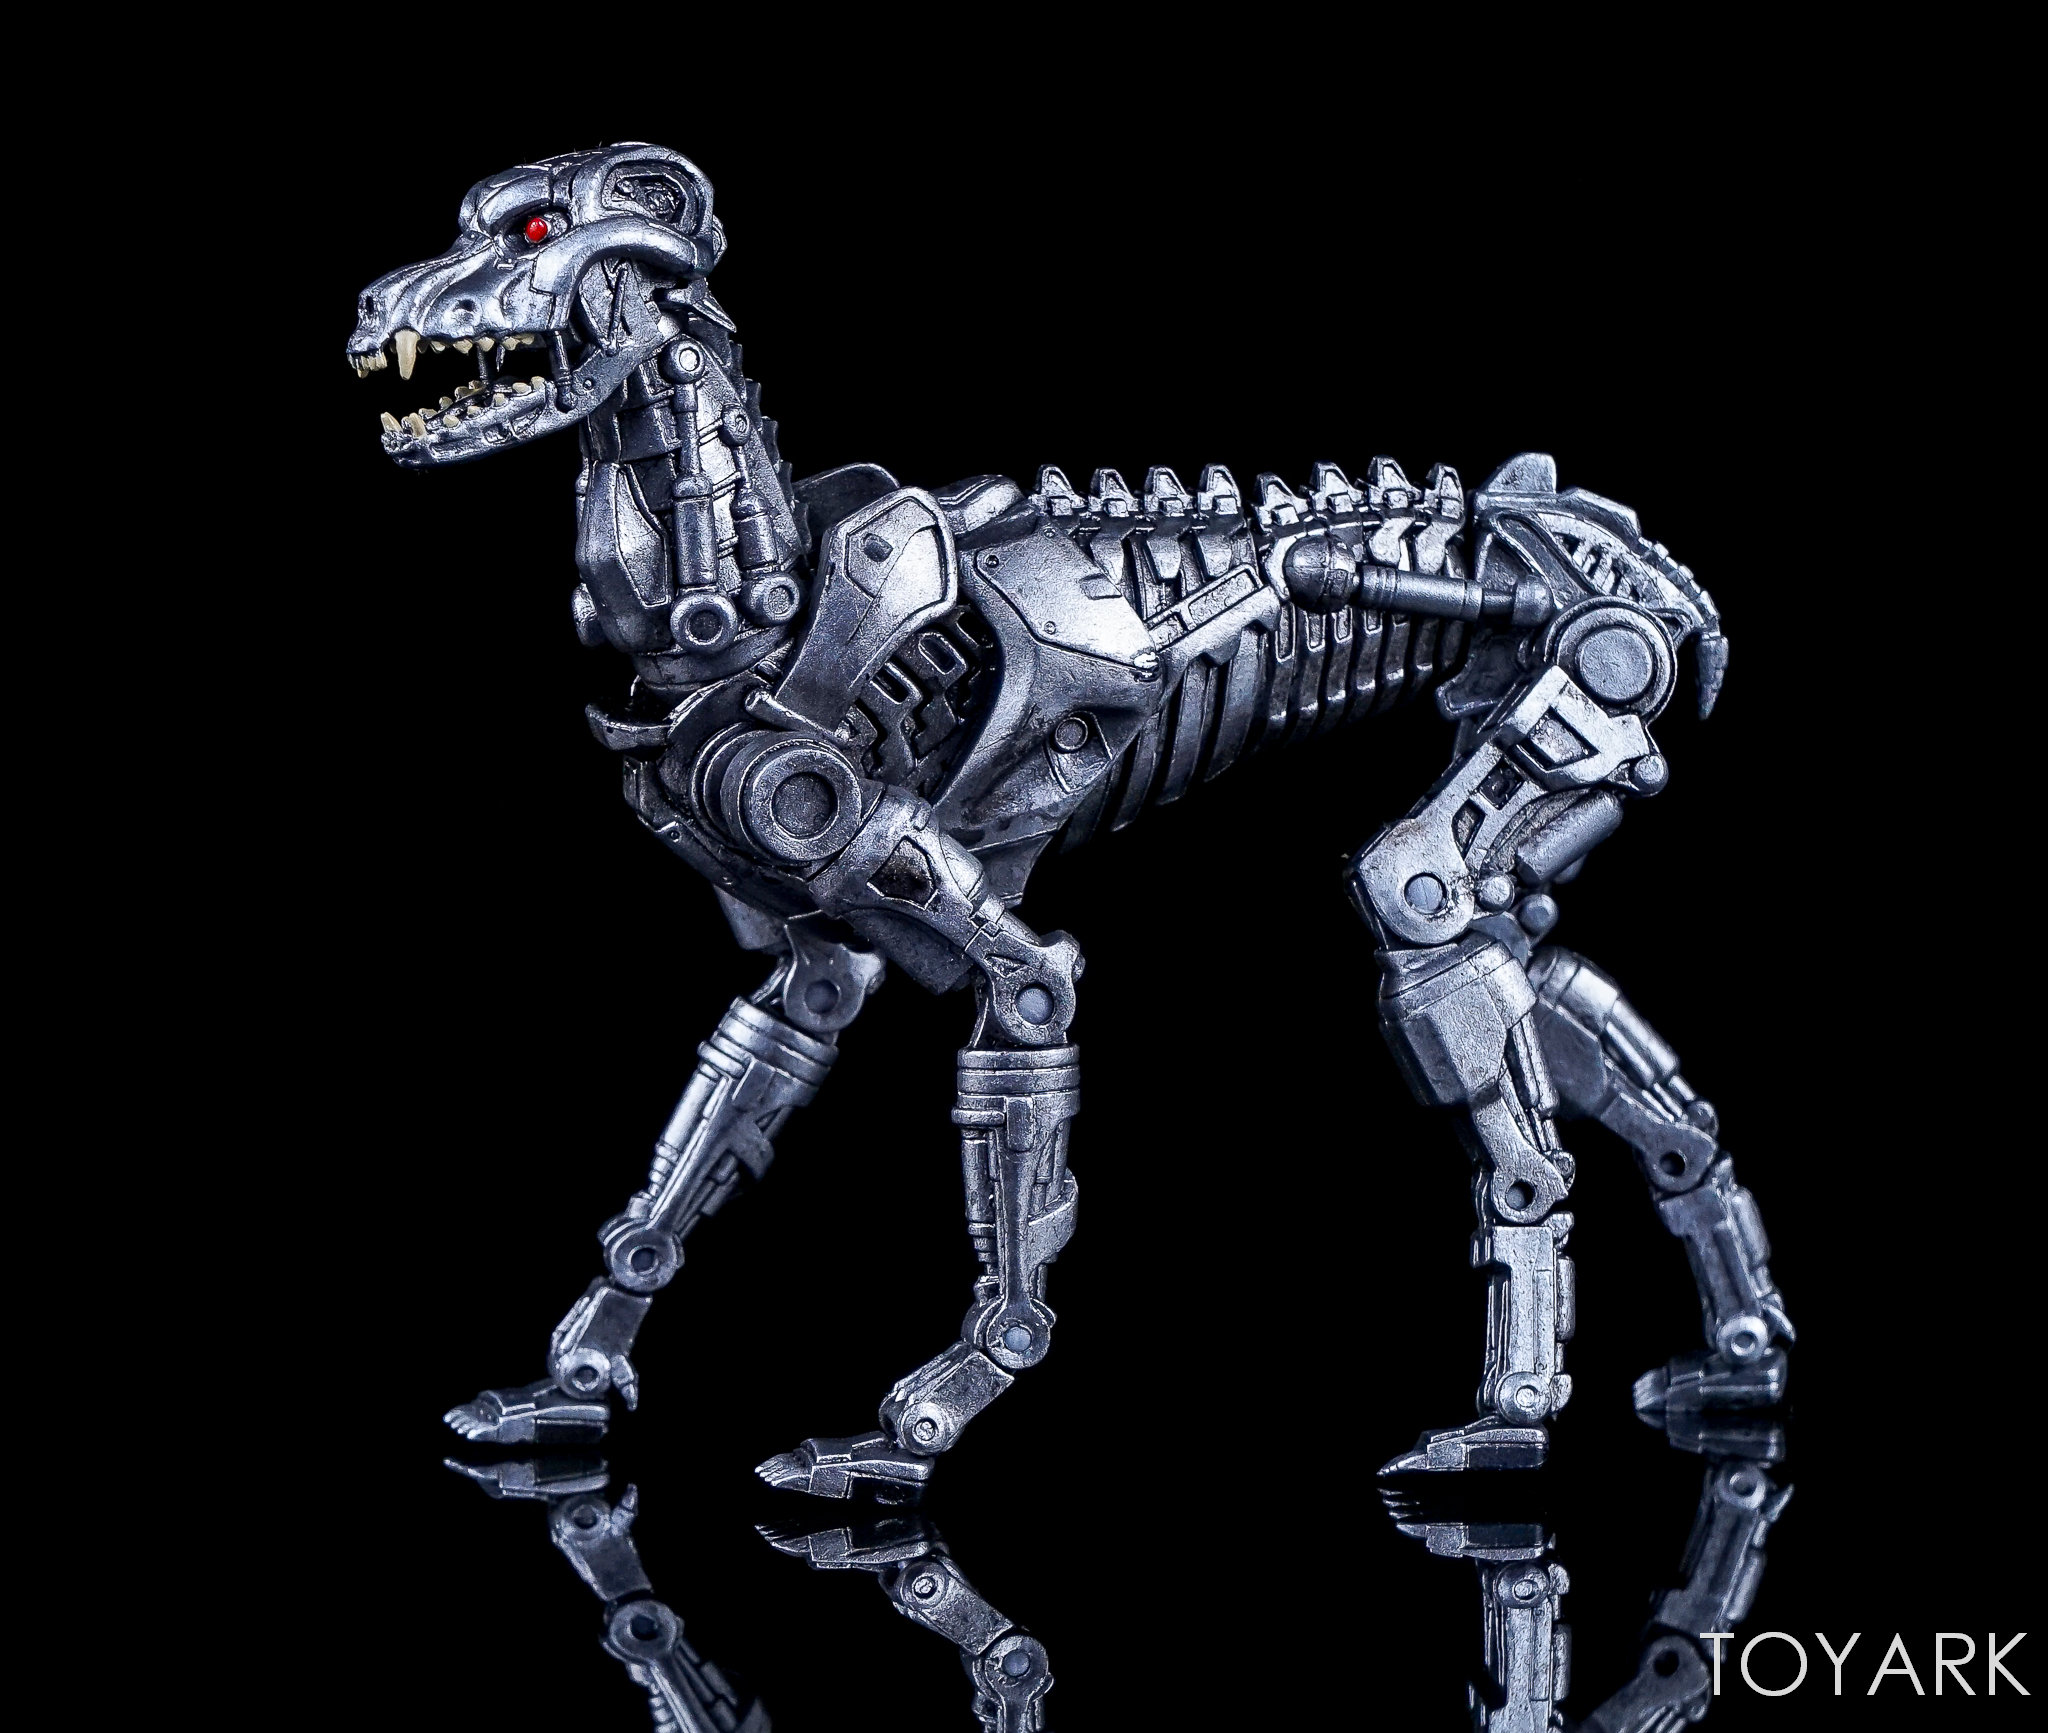 http://news.toyark.com/wp-content/uploads/sites/4/2017/12/NECA-EndoCop-and-Terminator-Dog-015.jpg